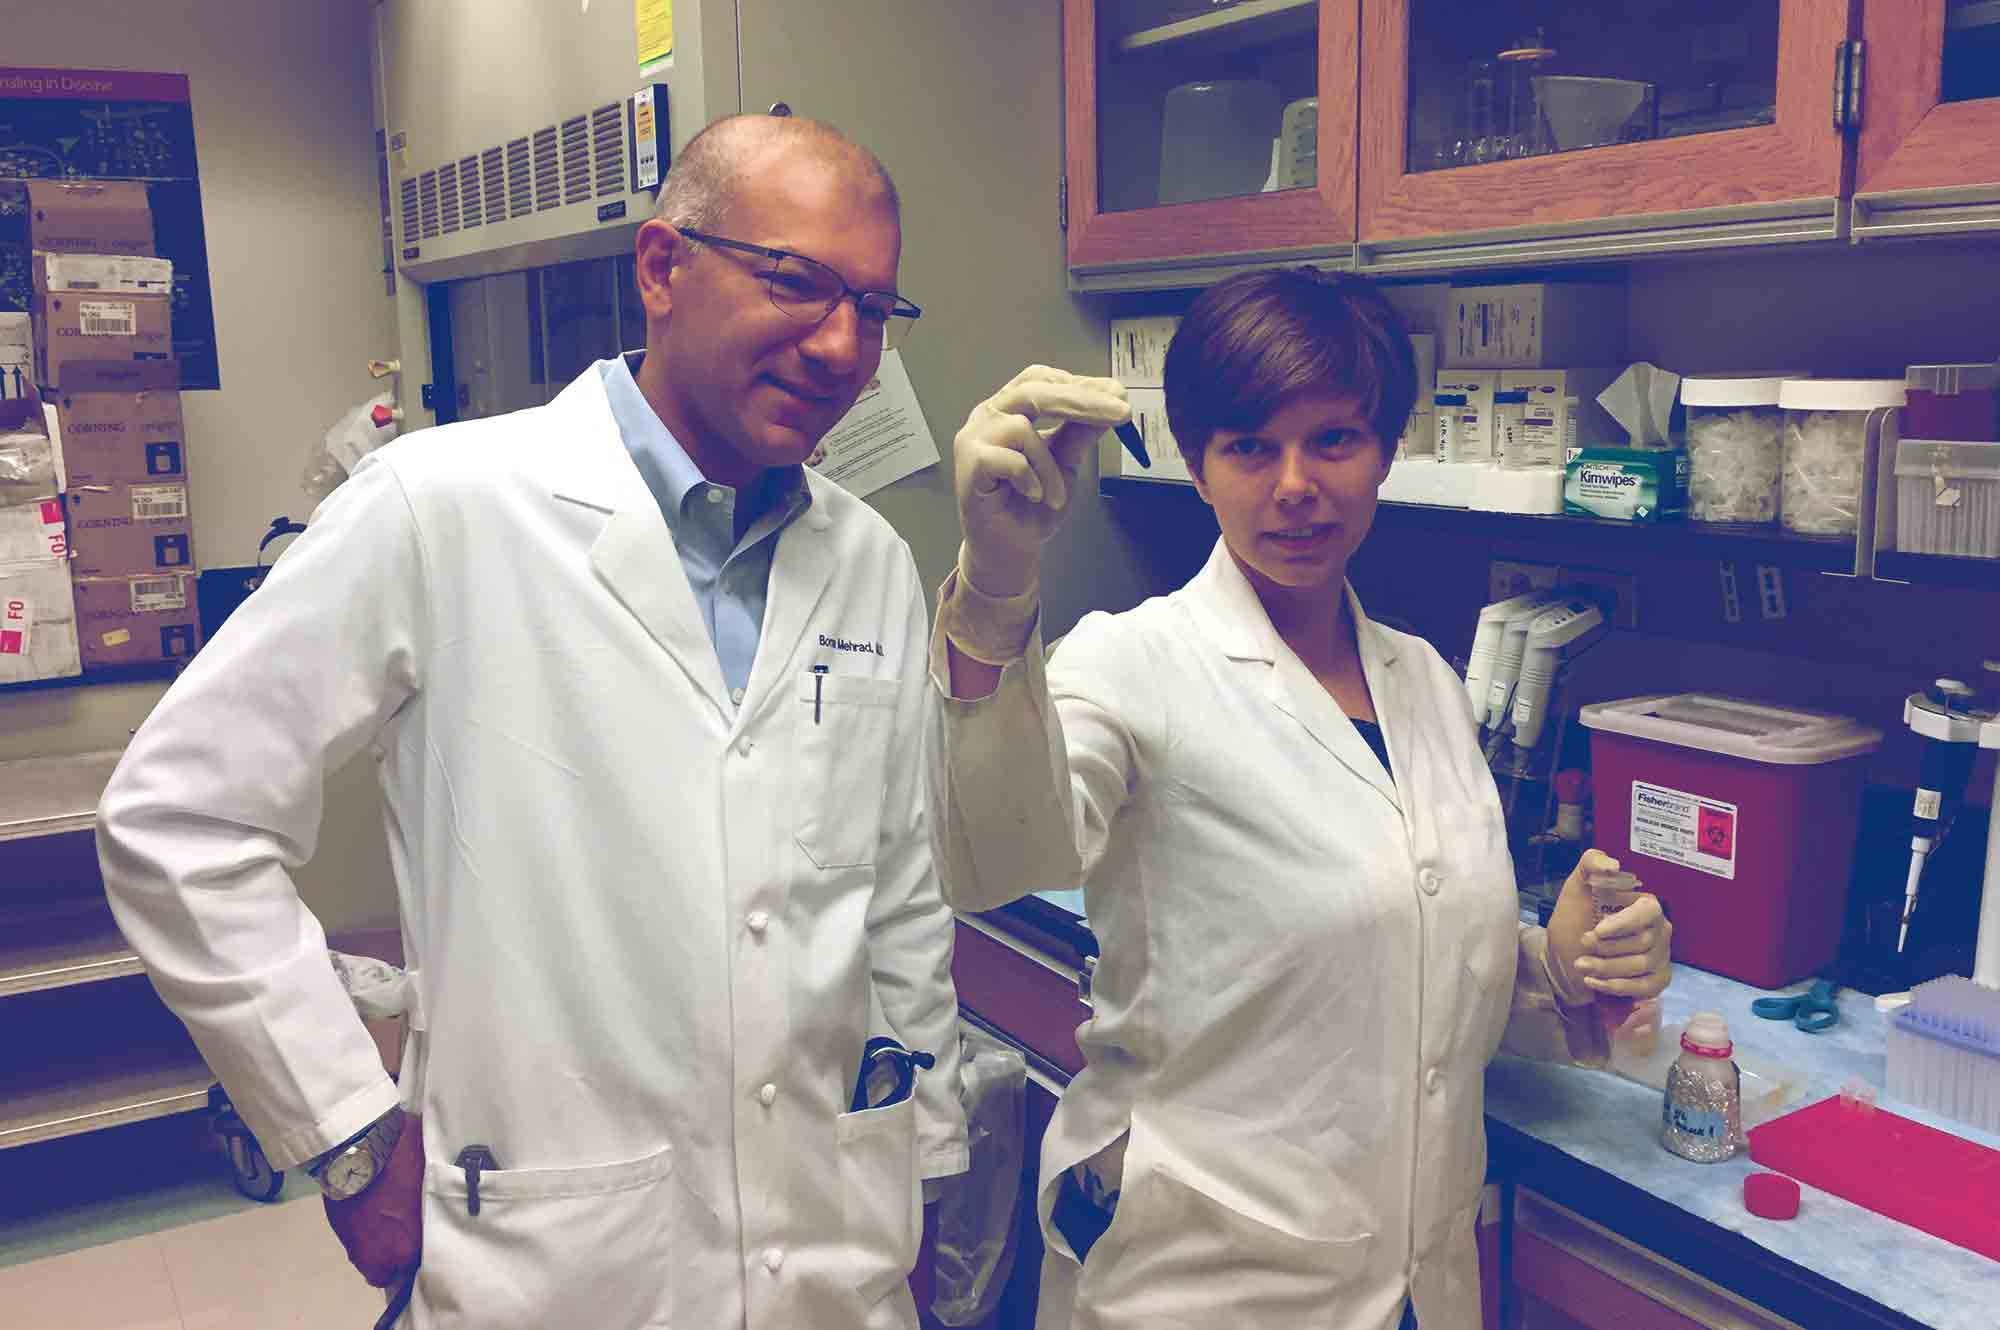 UVA researchers Borna Mehrad, left, and Kathryn Michels found that the hormone hepcidin limits the spread of the pneumonia bacteria by hiding the iron in the blood that the bacteria need to survive and grow.